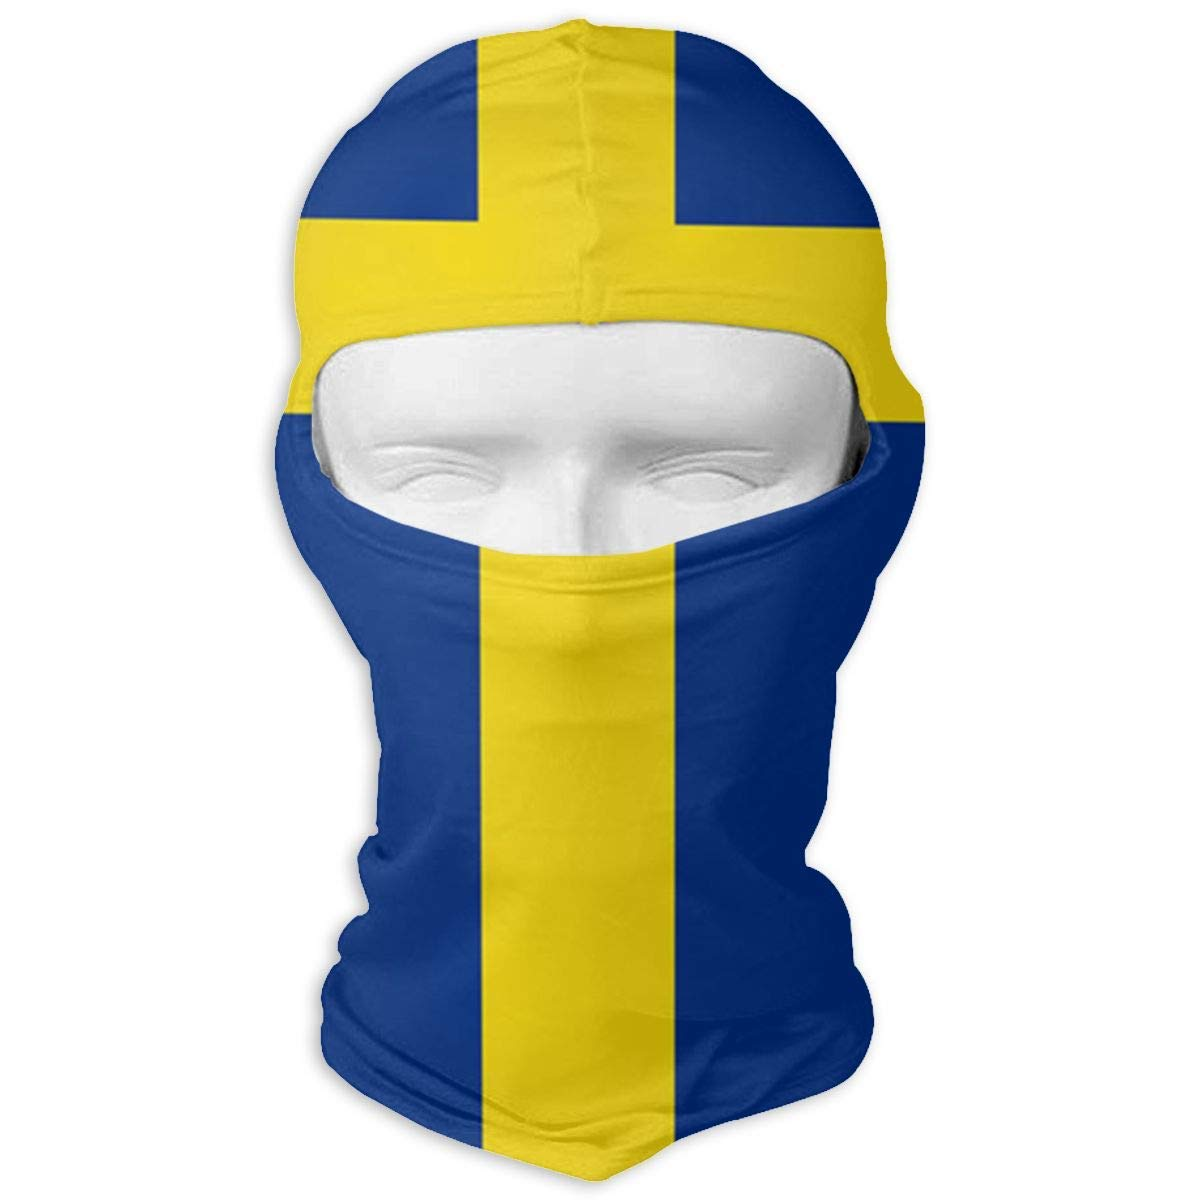 Miedhki Sweden Outdoor Cycling Ski Balaclava Mask for Cycling Outdoor Sports Full Face Mask Breathable Multicolor2